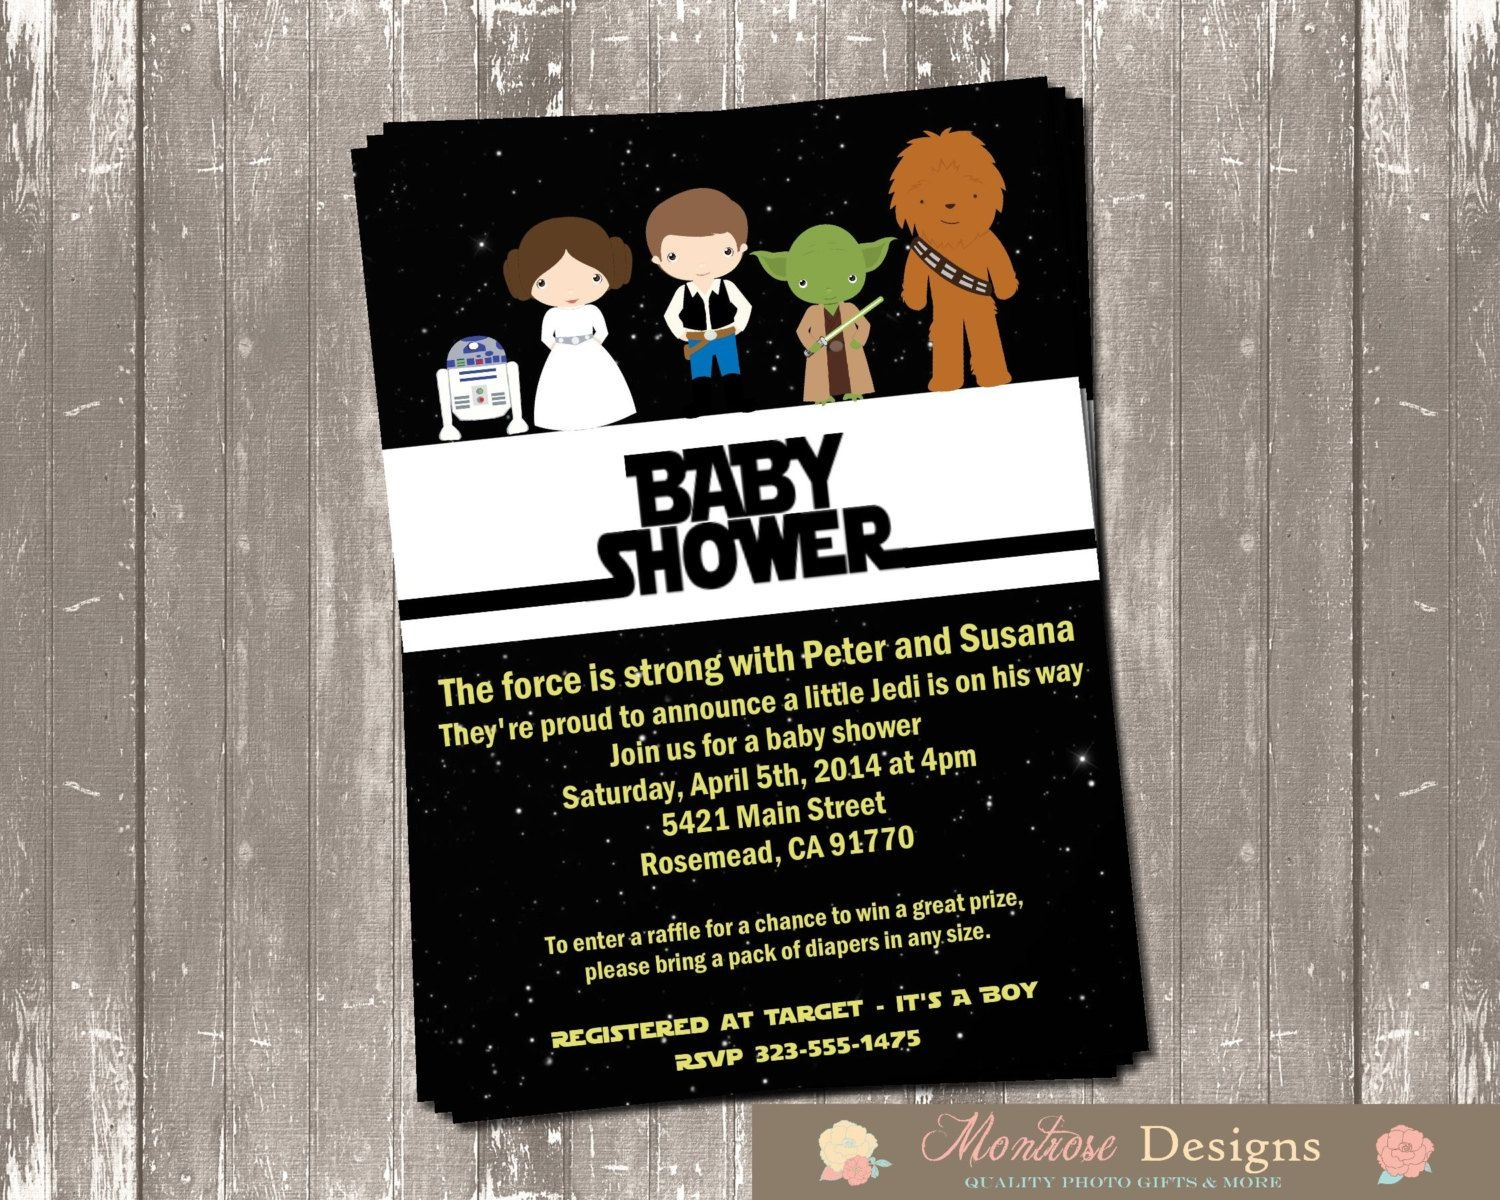 Tips Easy To Create Star Wars Baby Shower Invites Free Templates - Free Printable Star Wars Baby Shower Invites